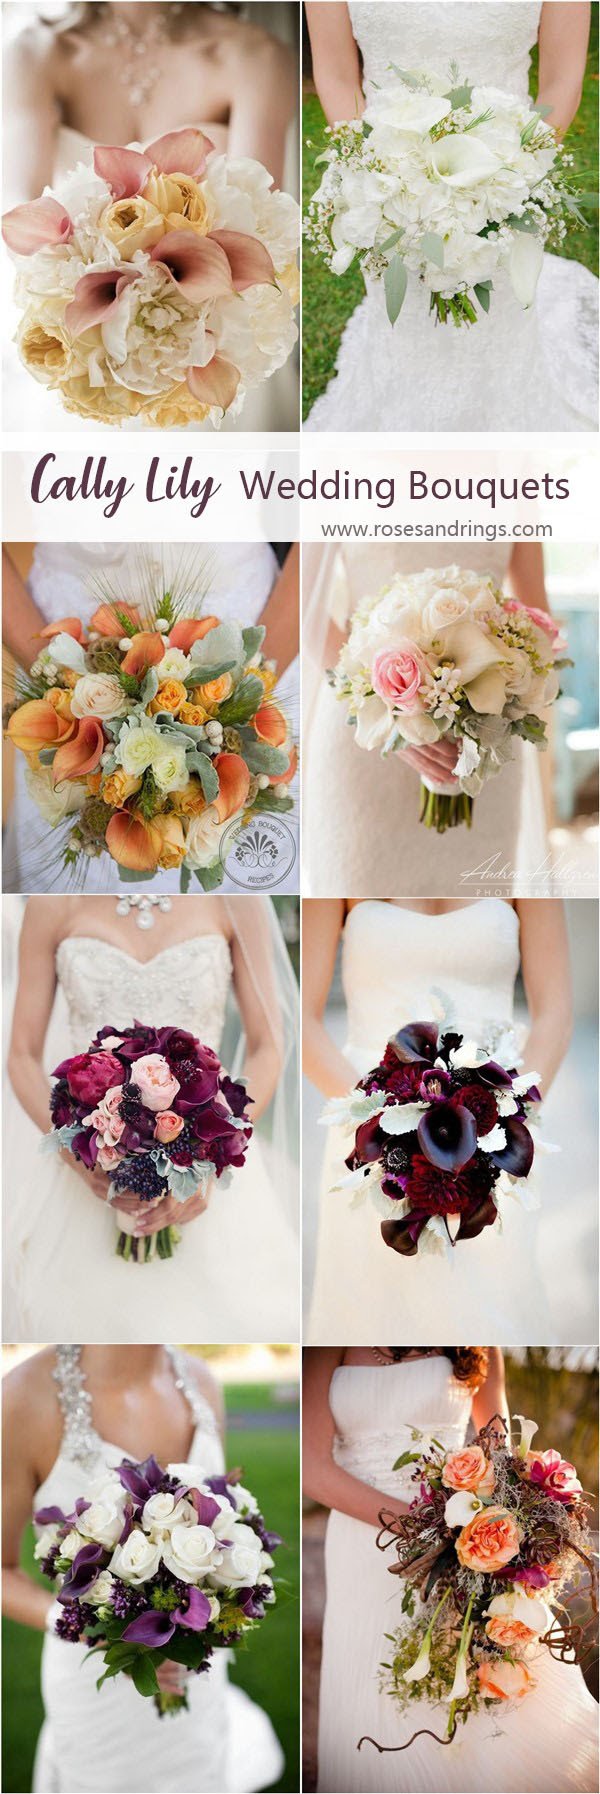 18 Most Beautiful Calla Lily Wedding Bouquets Roses Rings